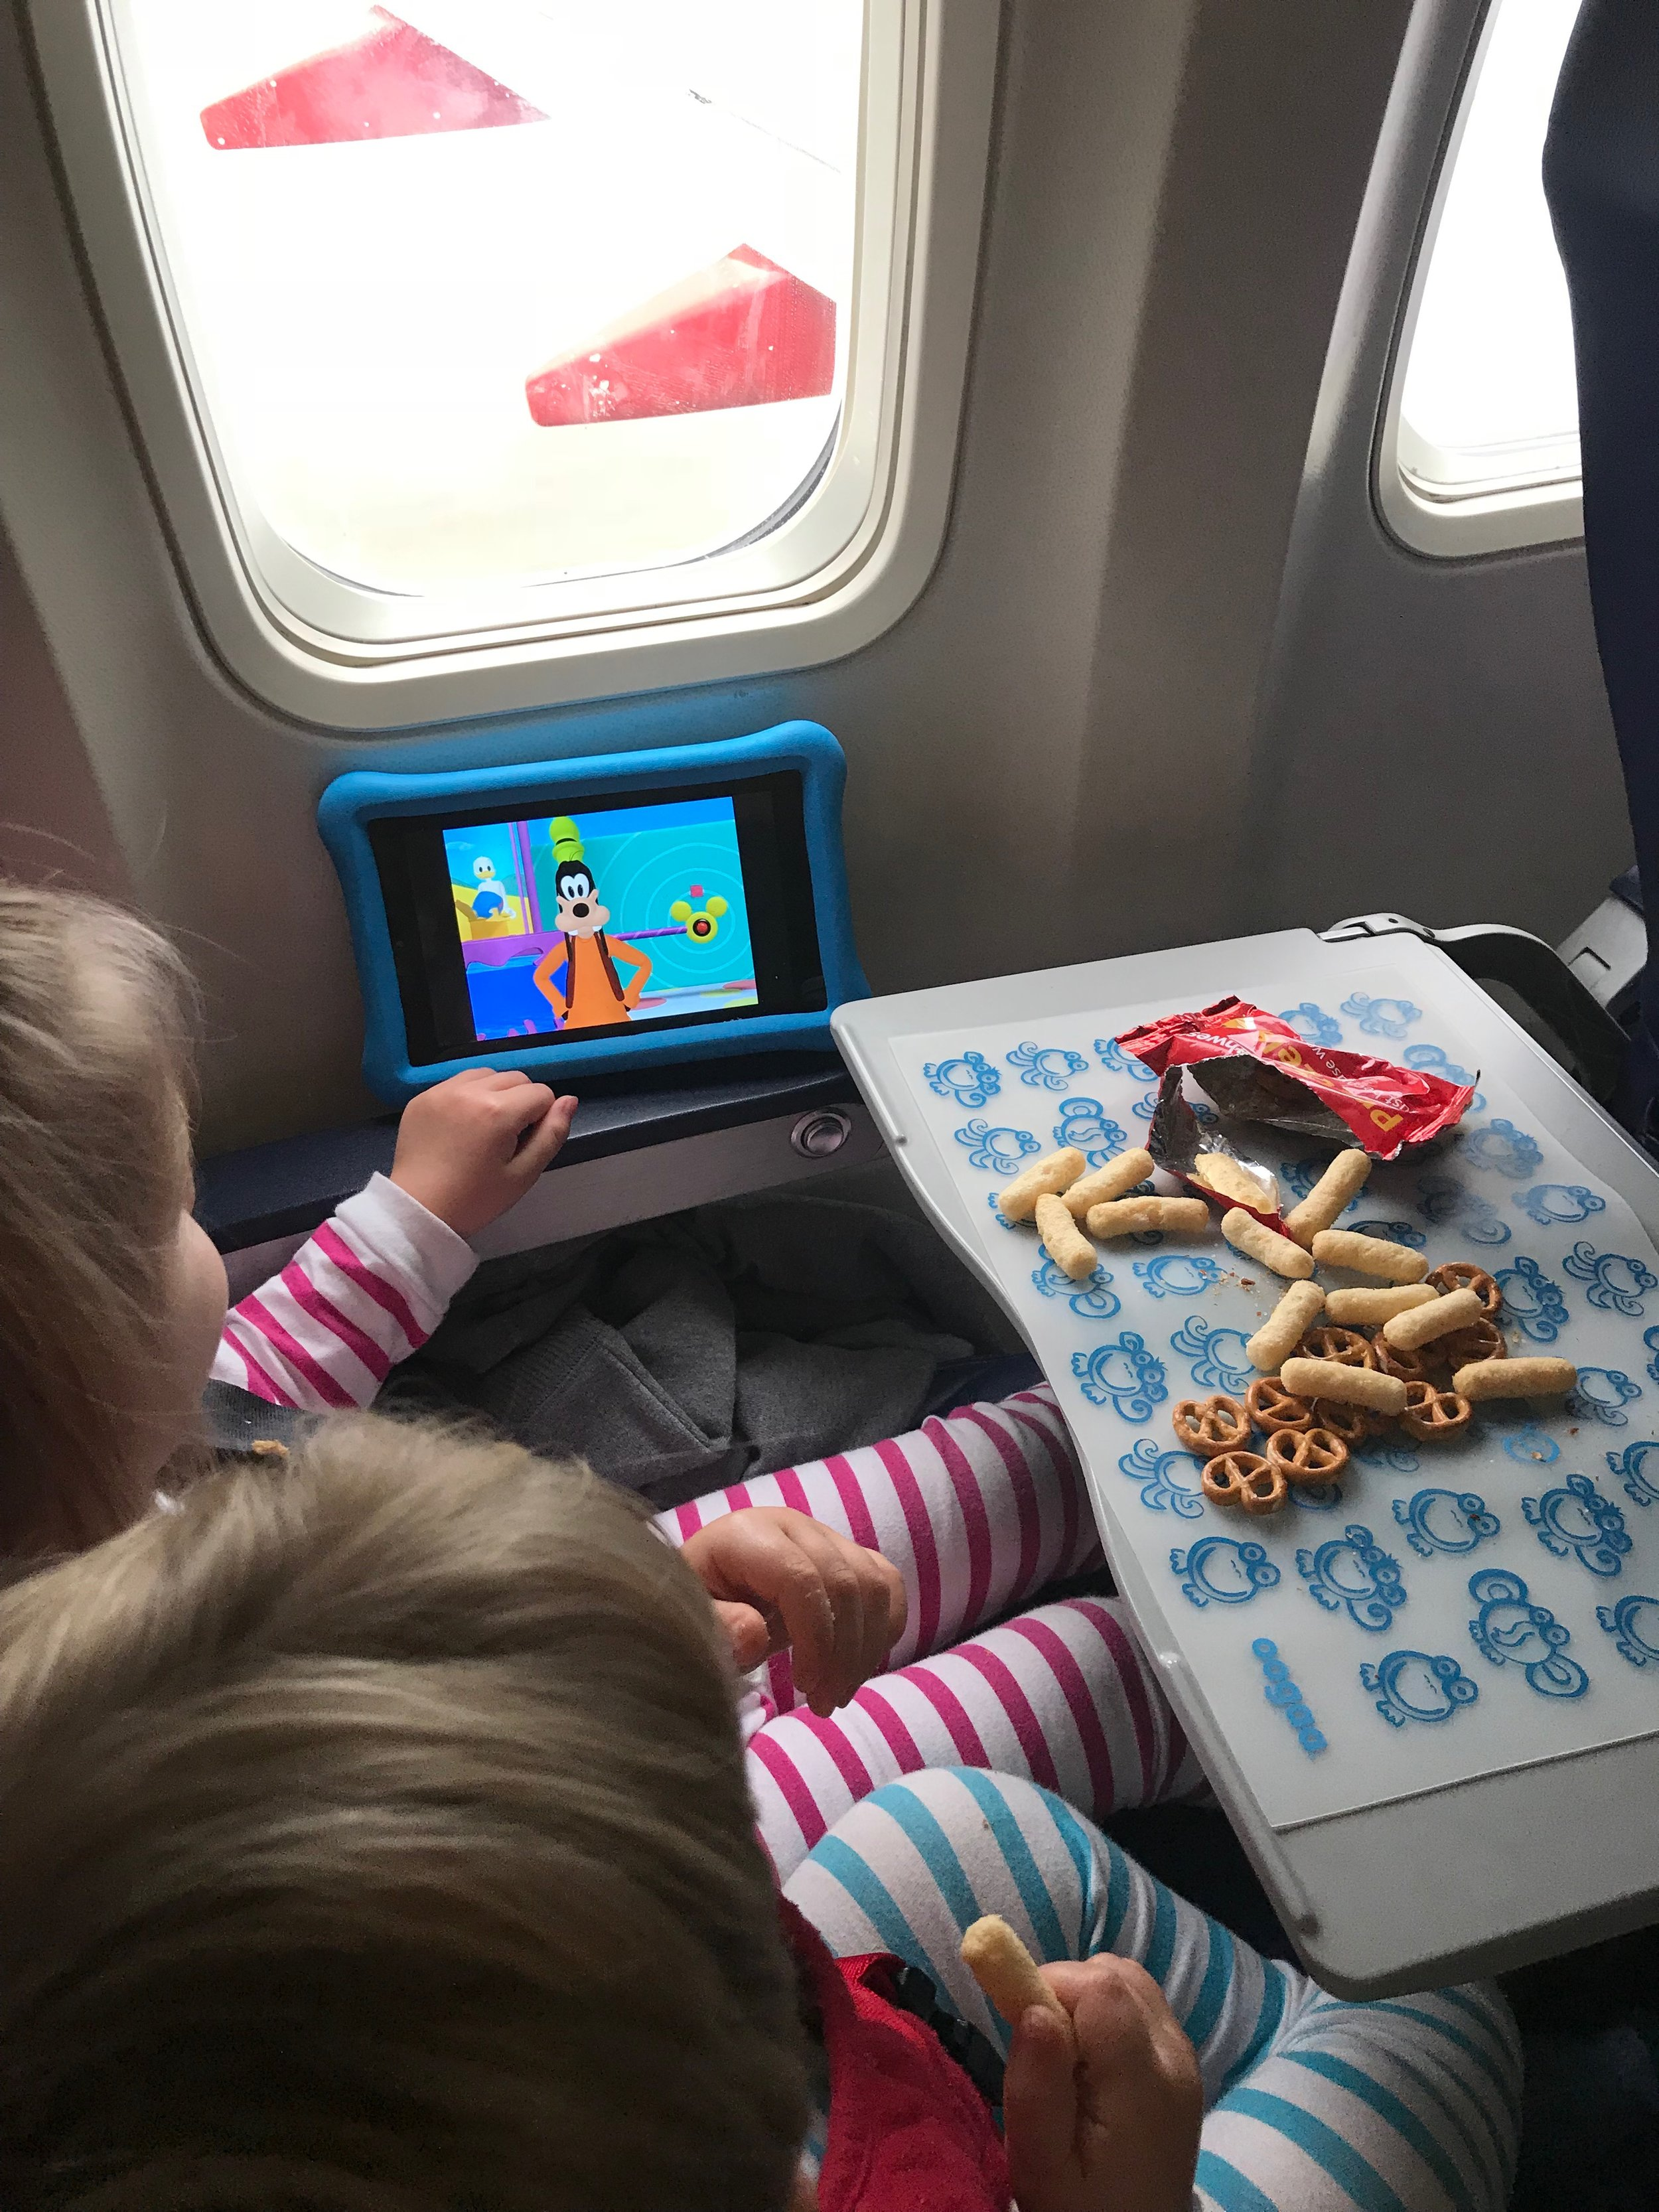 Familiar snacks: My kids love those gerber cheddar chips, so I always bring a bag on our flight. once we are AIRBORNE, I whip them out and everyone is happy